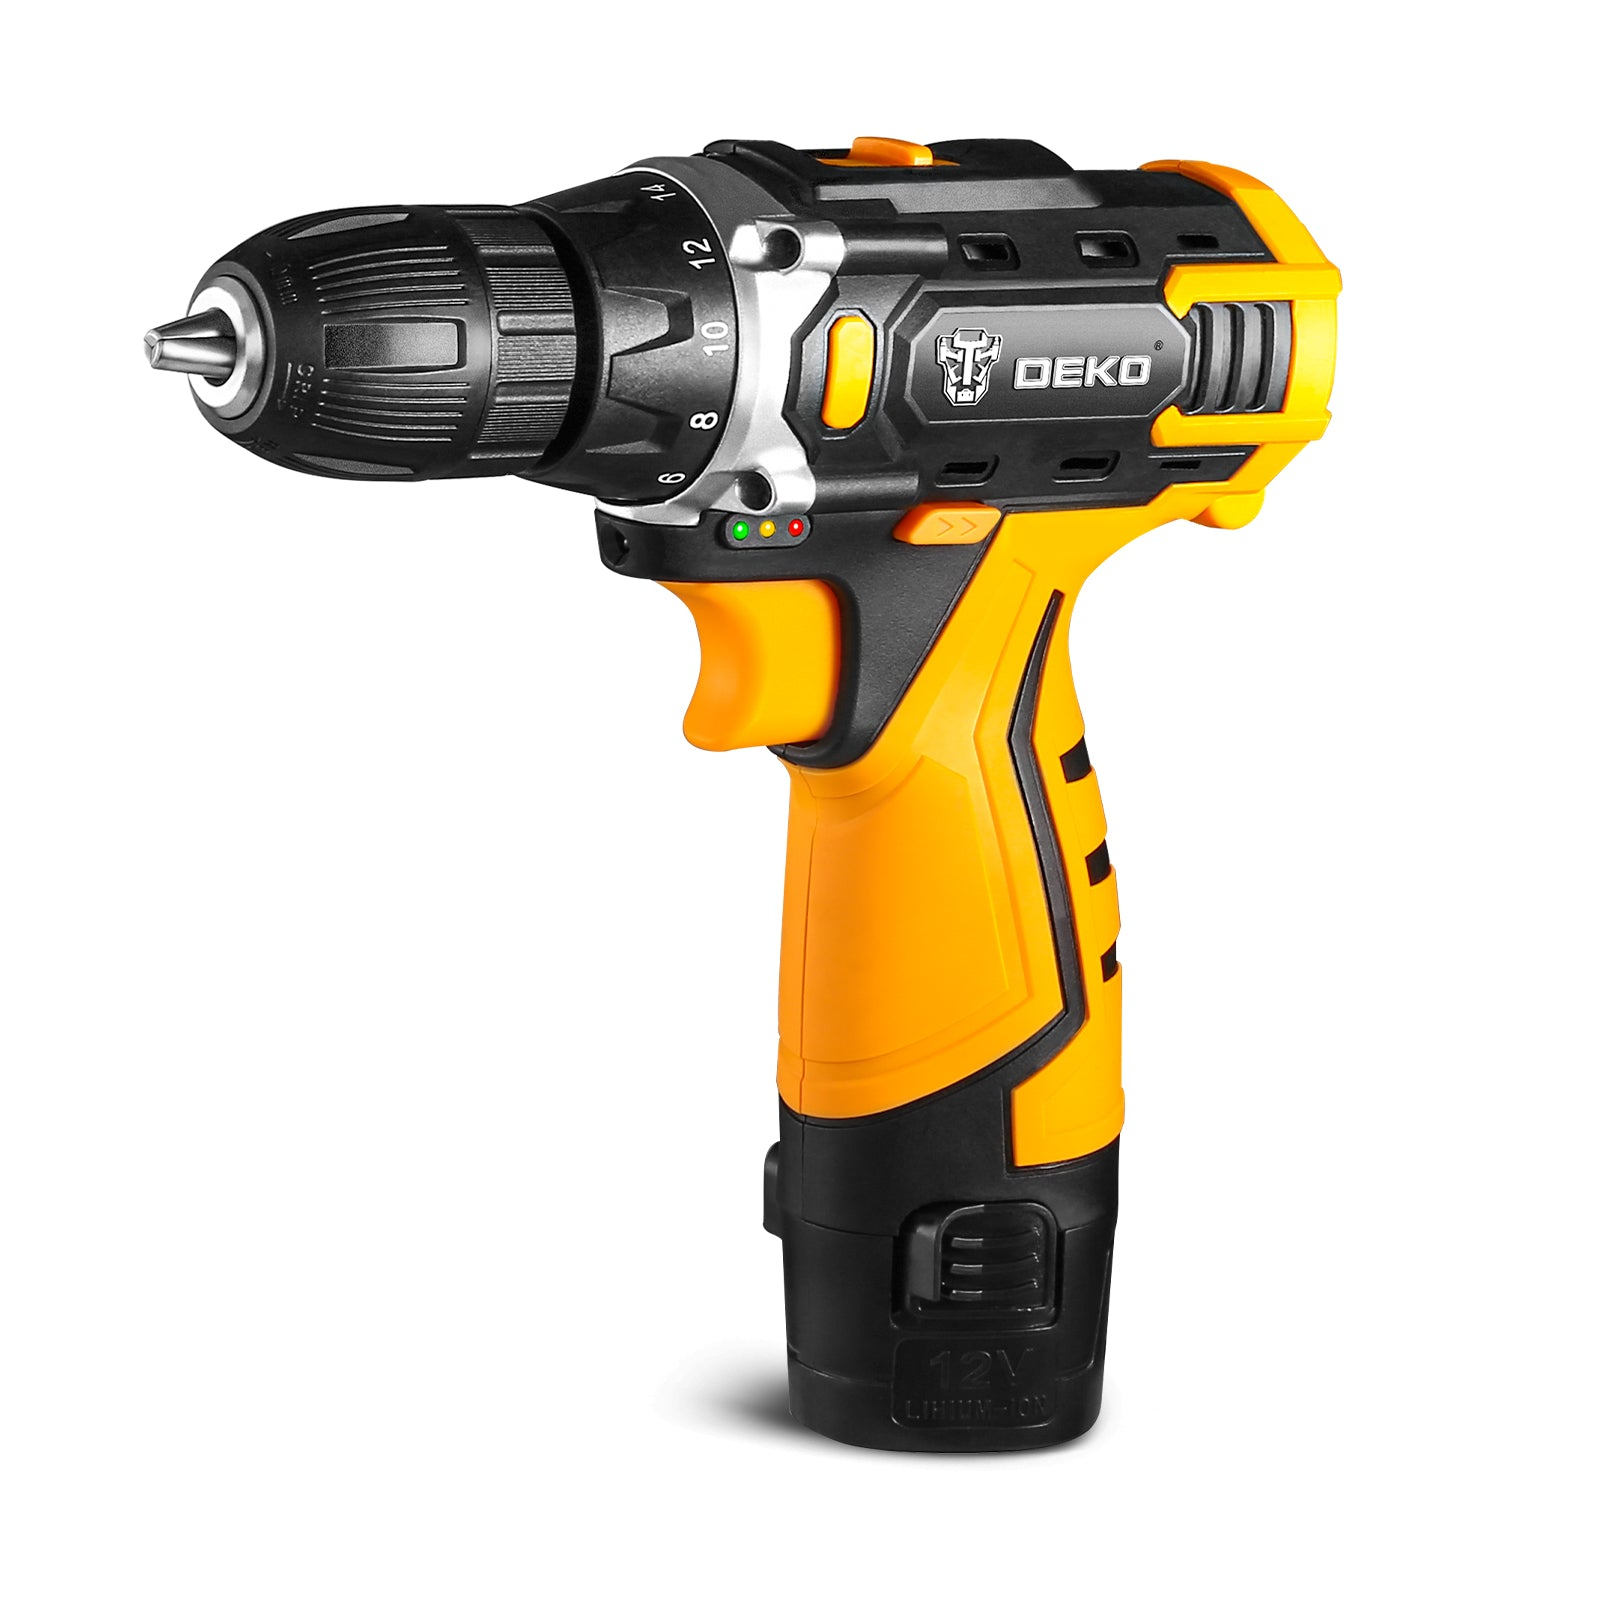 DEKO New Series 12V Cordless Drill Screwdriver Mini Wireless Power Driver 18+1 Torque Settings Lithium-Ion Battery